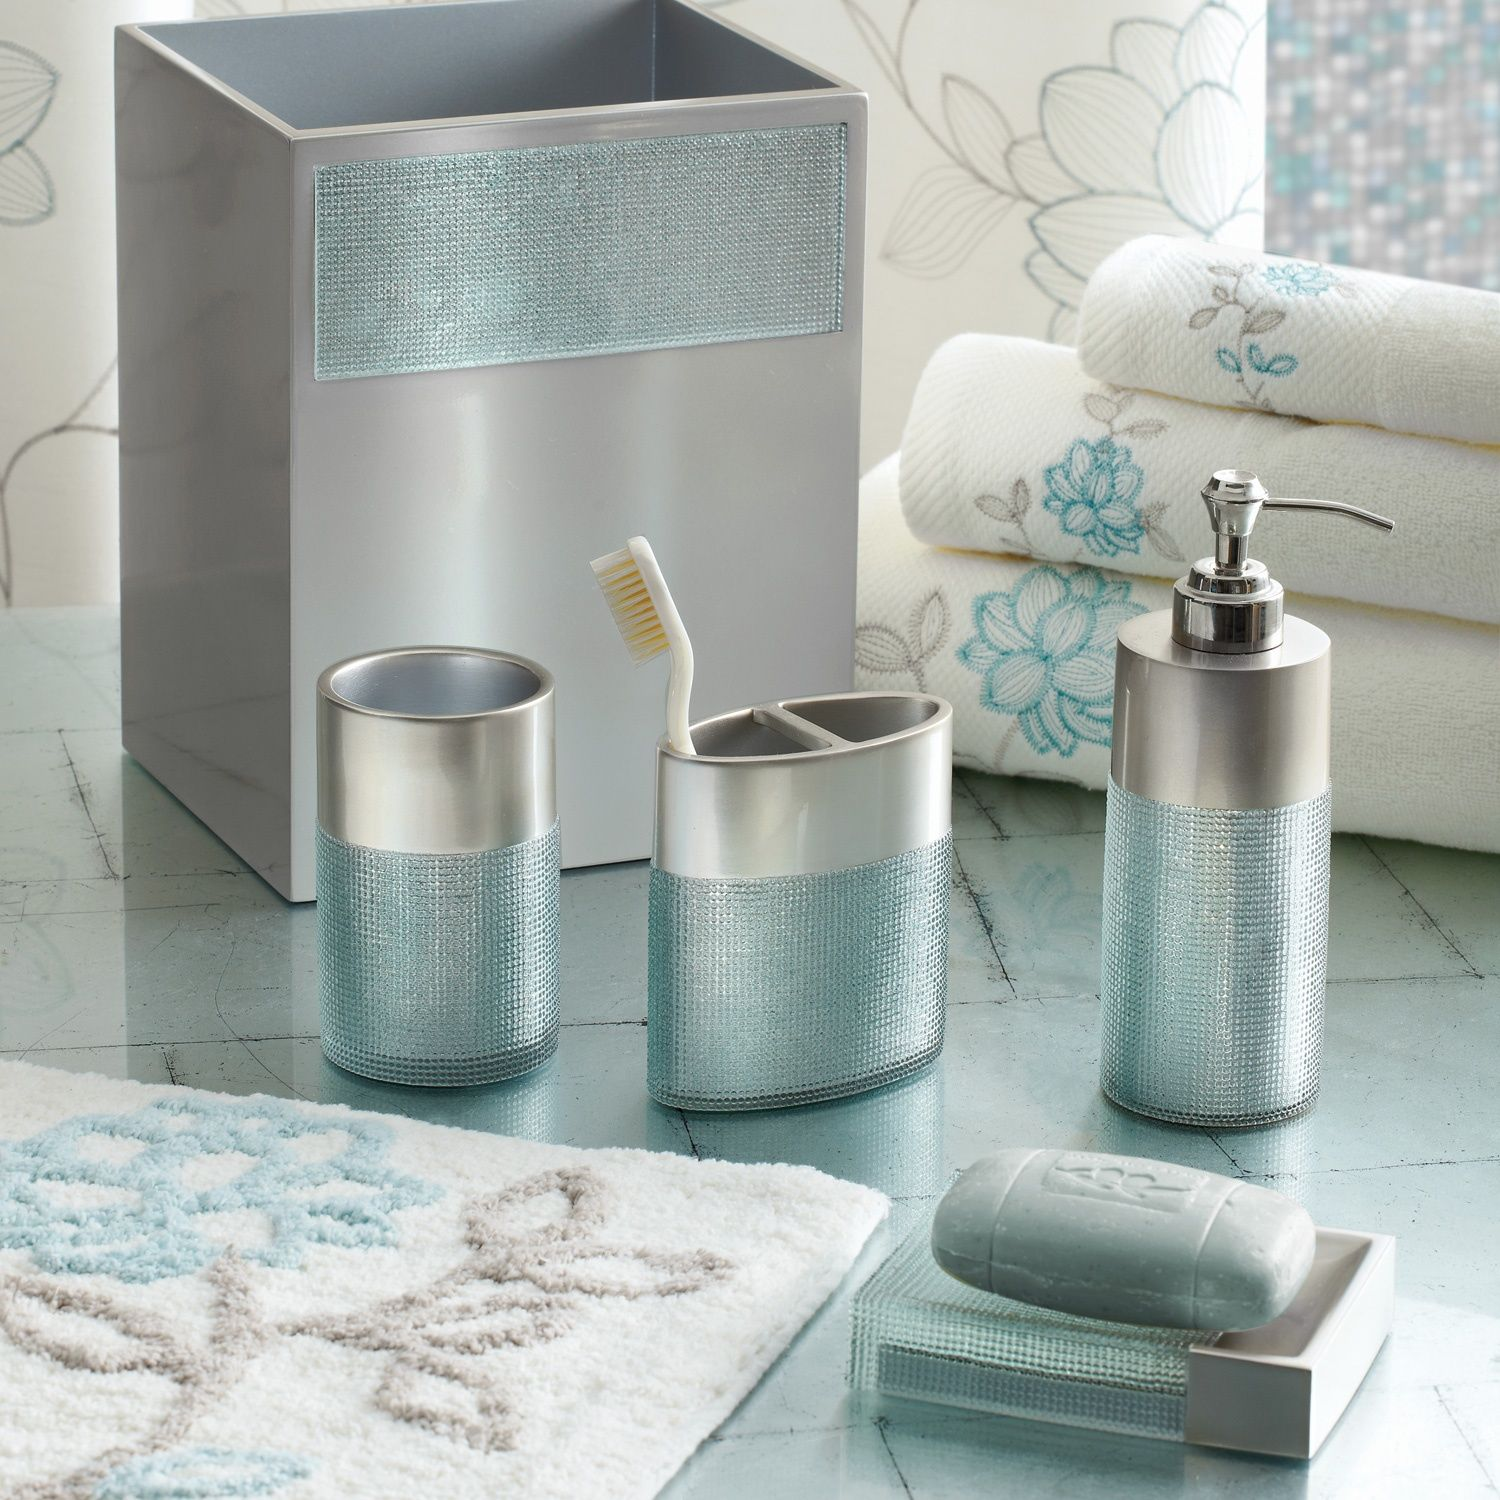 Charmant Gray Bathroom Accessories   Google Search